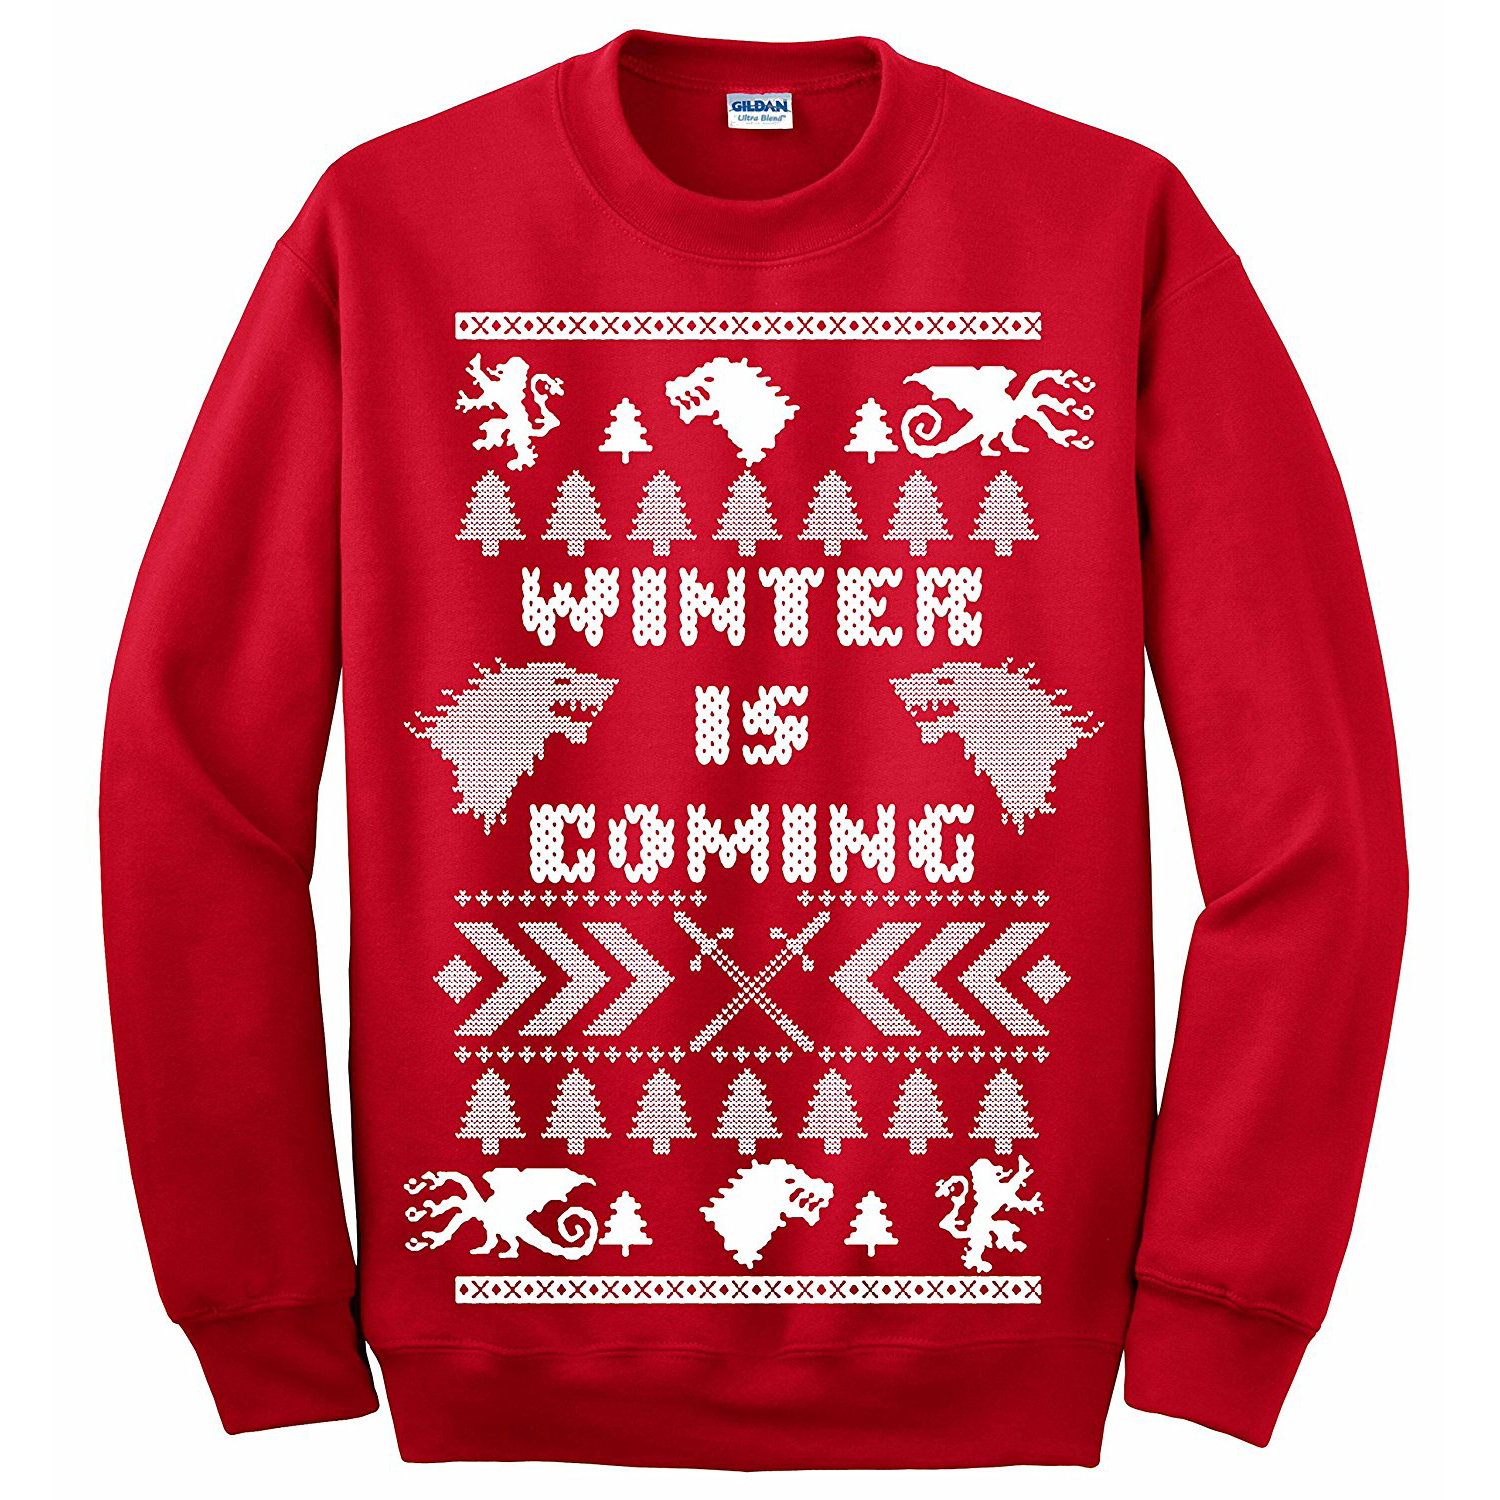 game of thrones christmas sweaters, game of thrones ugly christmas sweaters